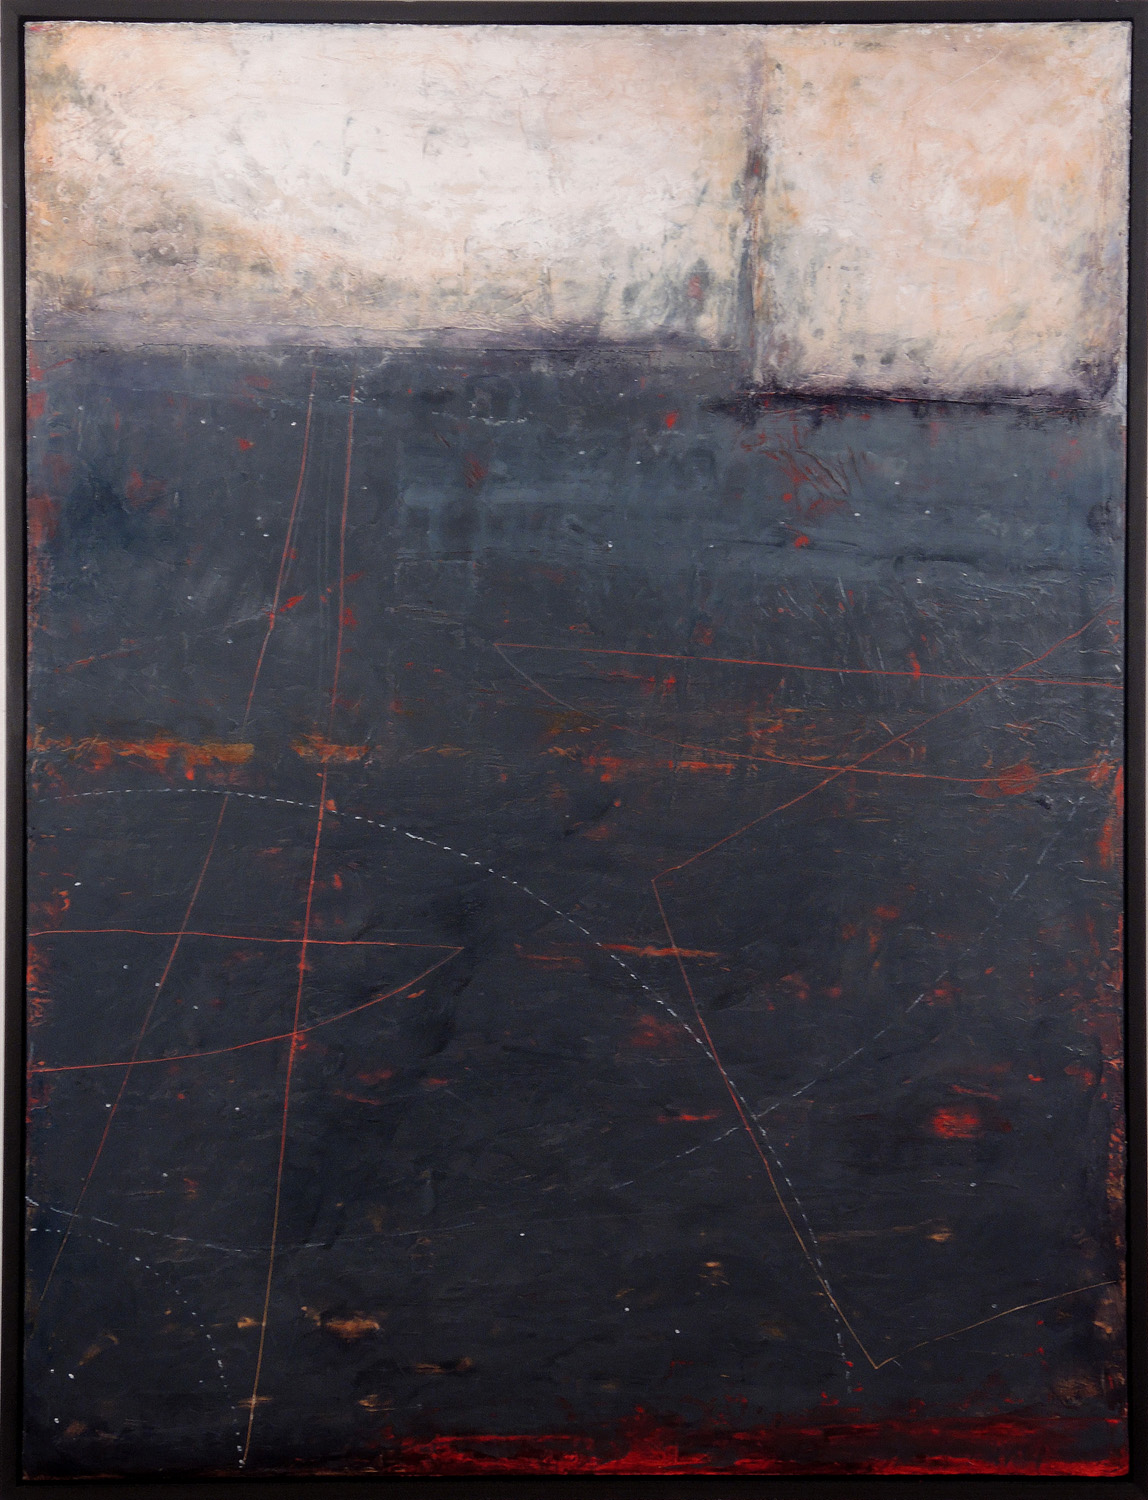 """Navigating at Night, 41"""" x 31"""" x 1.5"""", encaustic and oil on wood panel, 2013"""